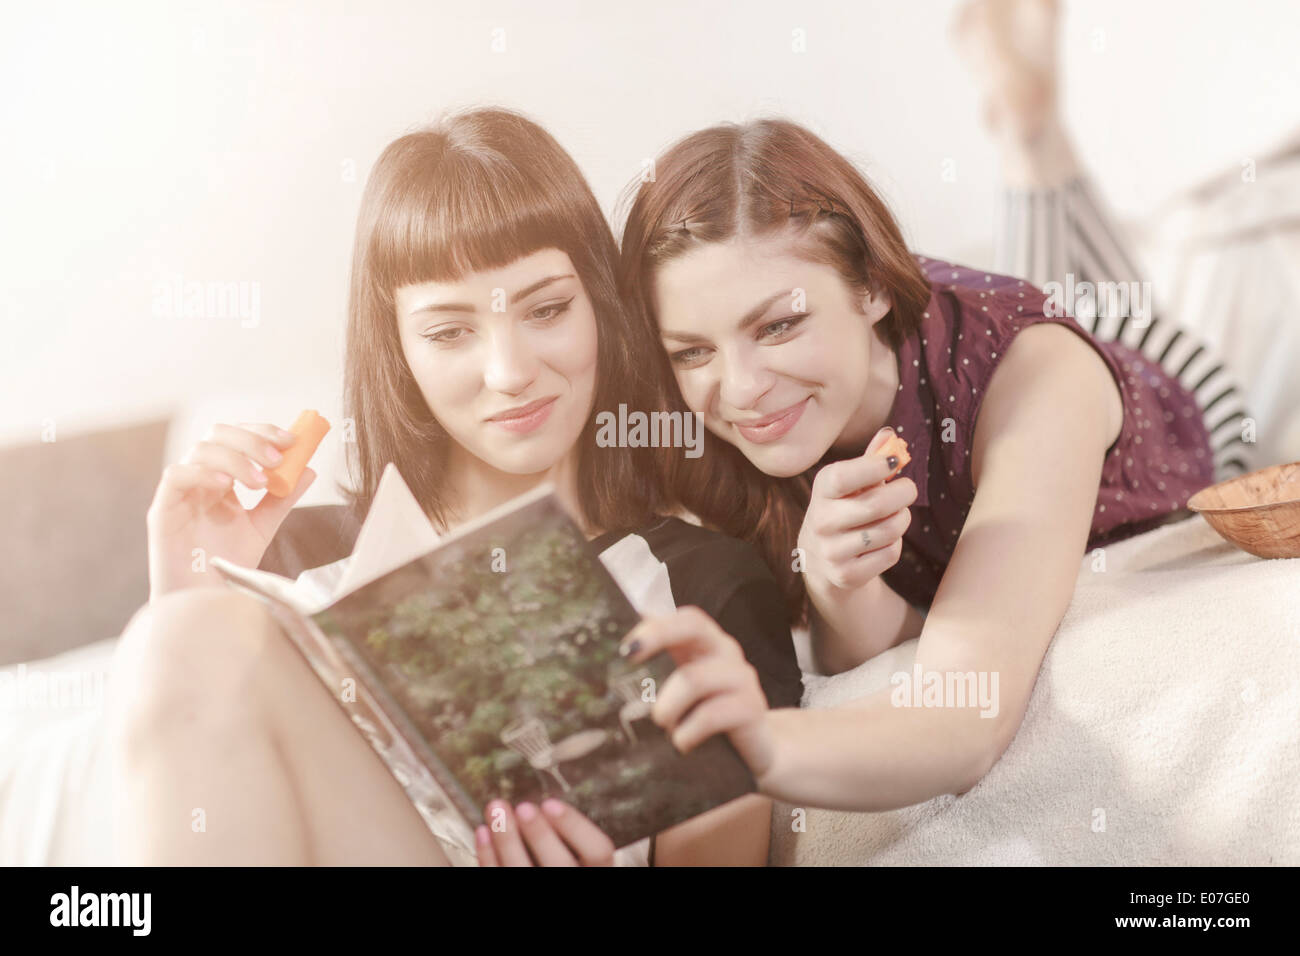 Two young women reading book together - Stock Image